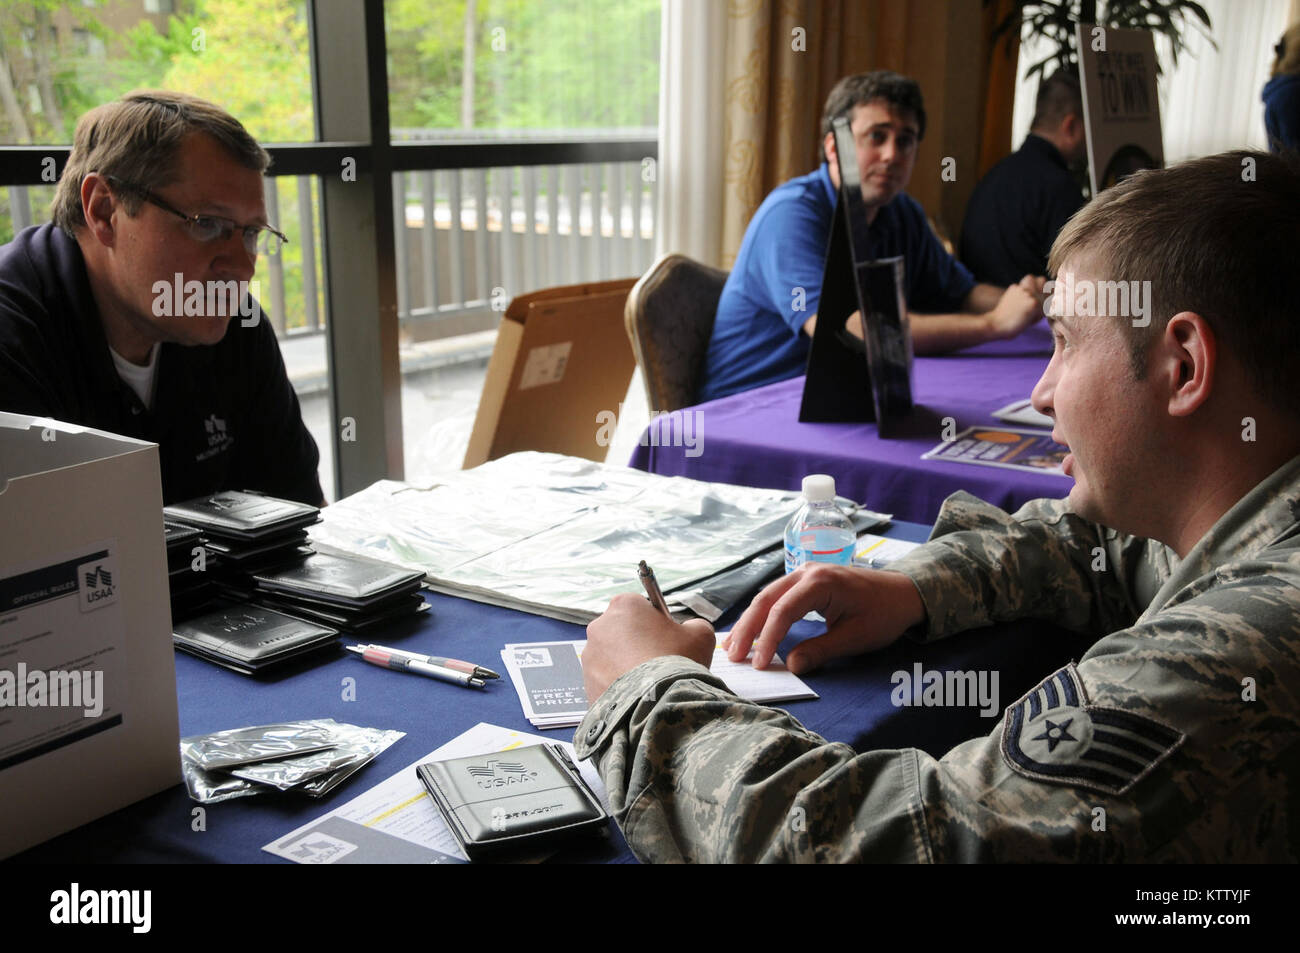 WEST HARRISON, N.Y. -Staff Sgt. Michael Glod, 106MXS, participating in a vendor drawing while learning about USAA's Stock Photo